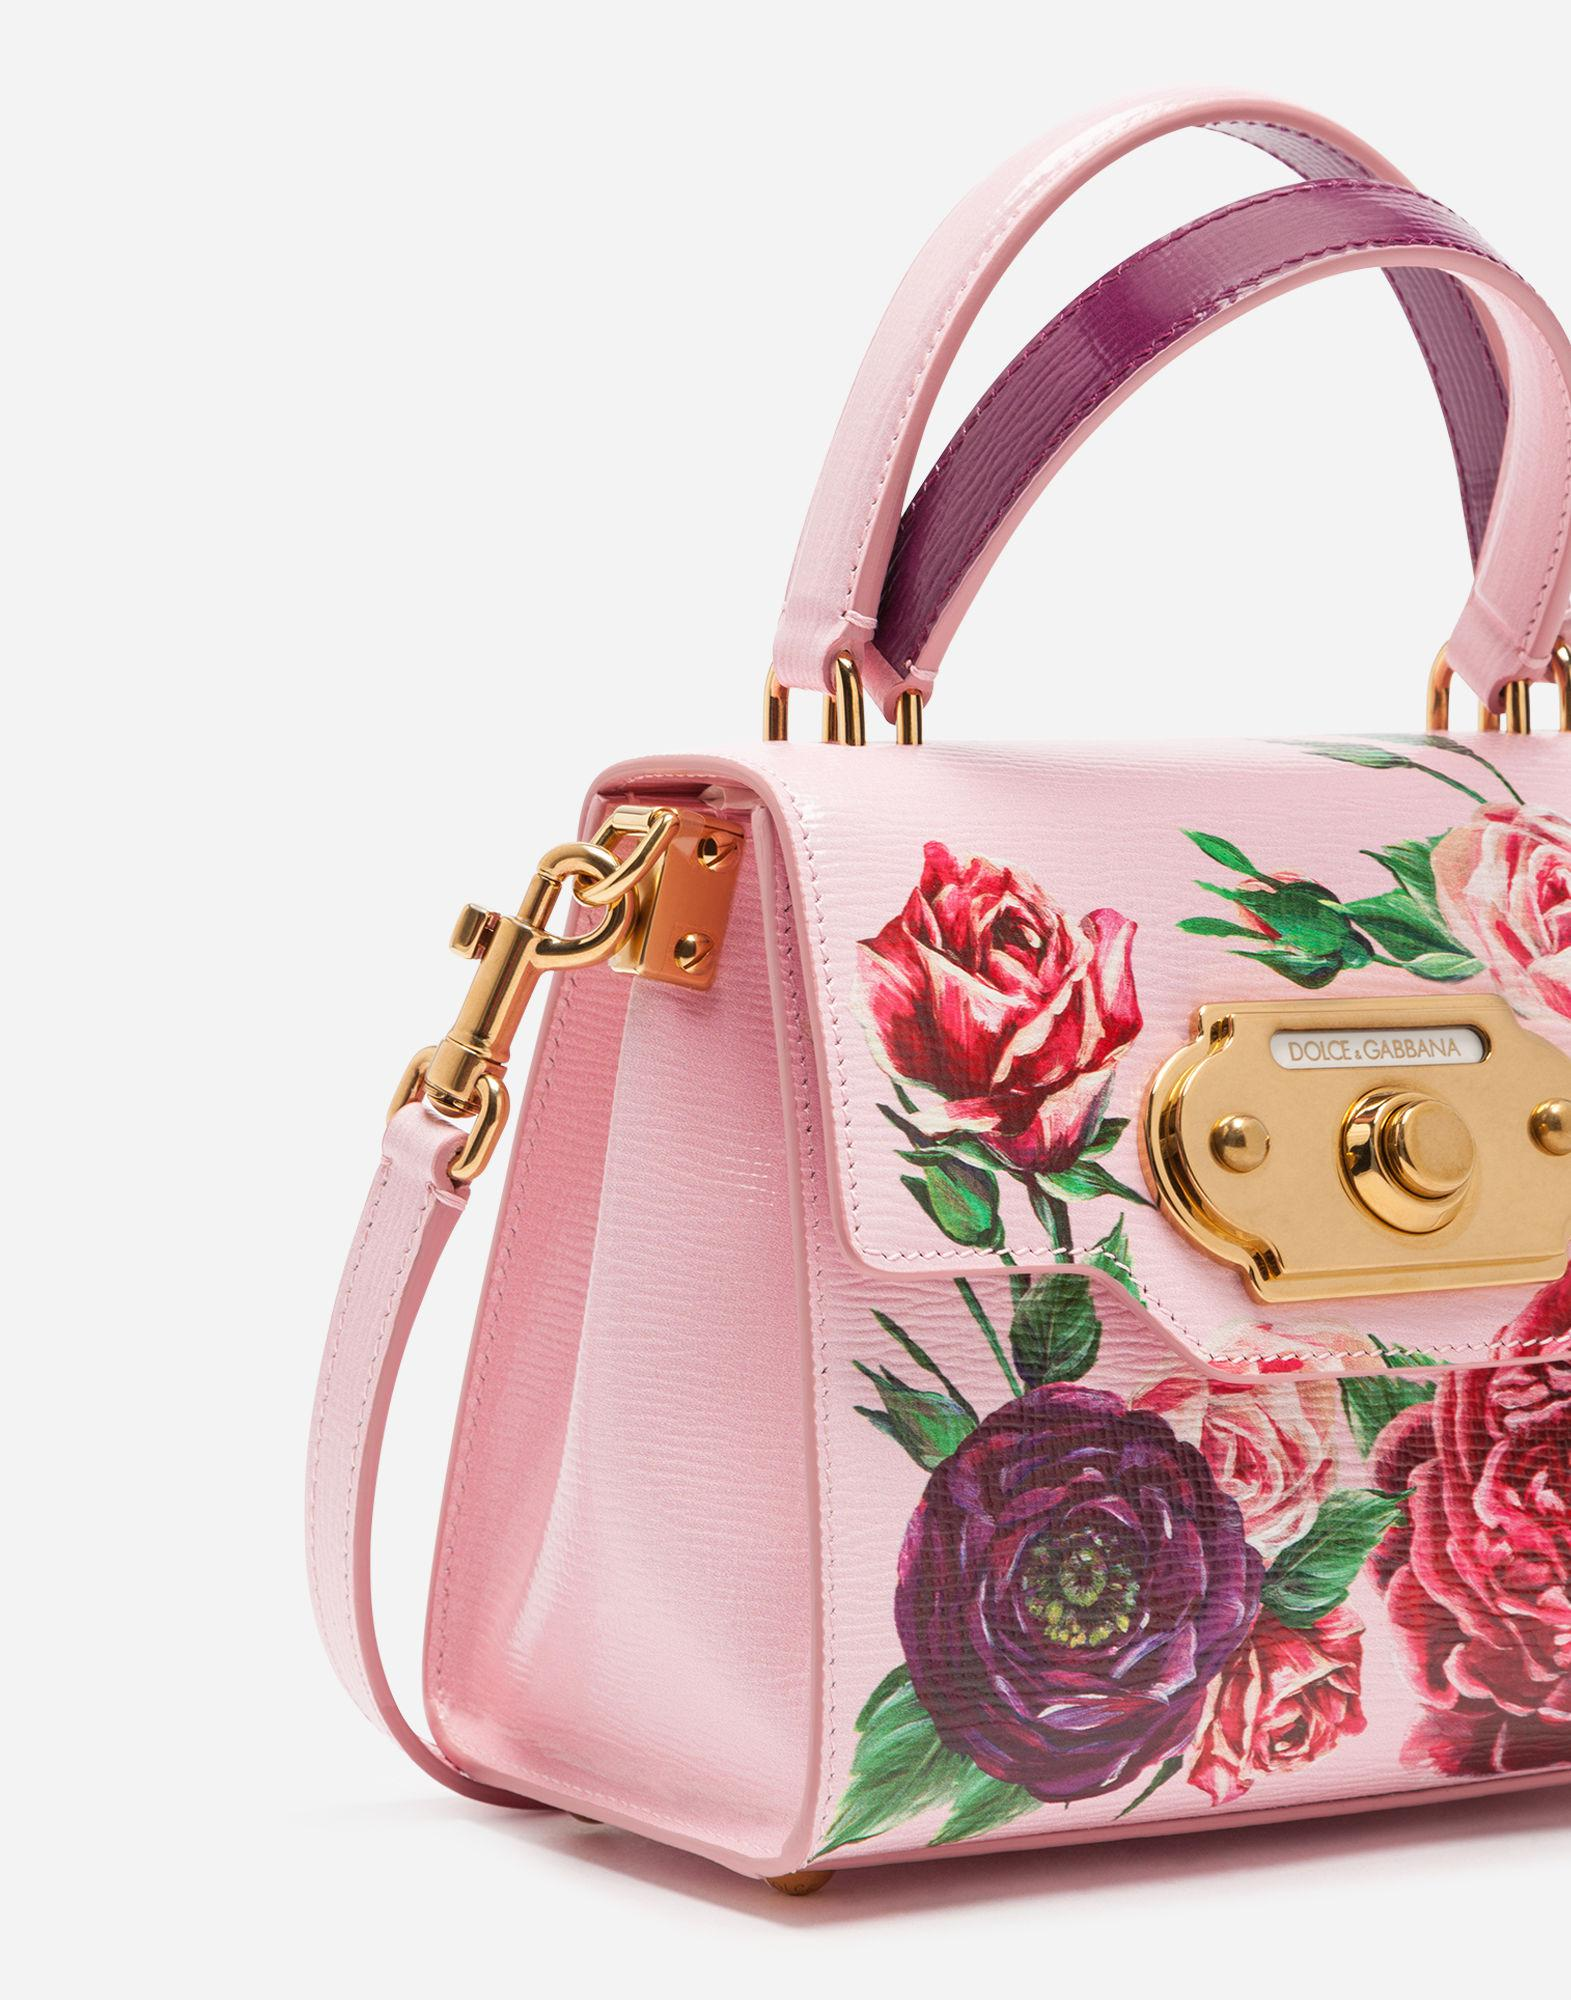 5d19f58dd2 Lyst - Dolce   Gabbana Small Welcome Bag In Peony-print Boarded ...